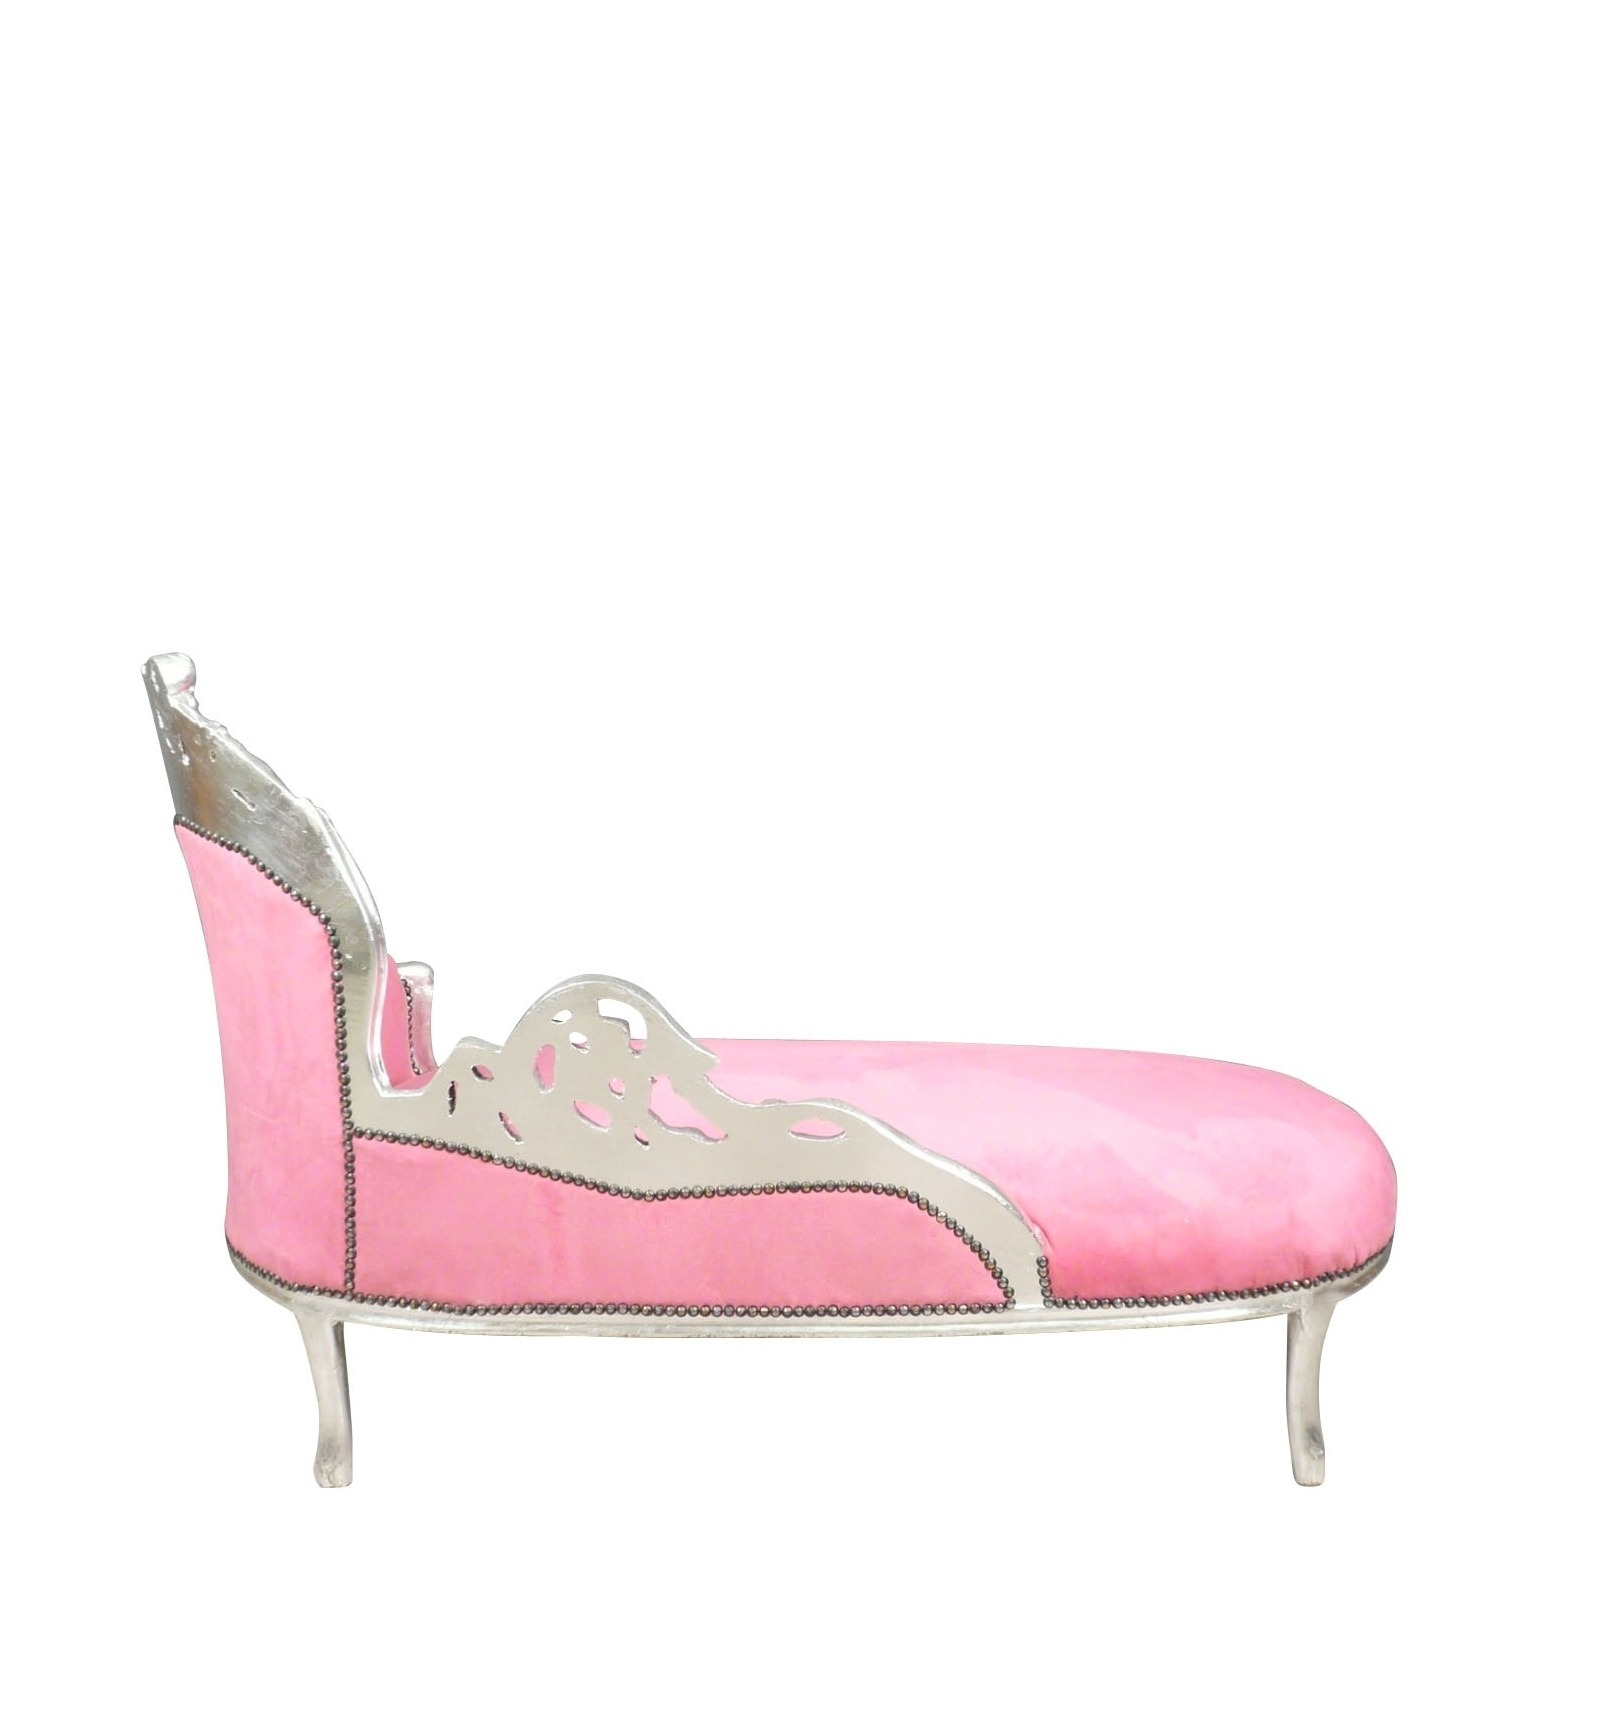 Chaise lounge baroque pink and silver armchair chair - Chaise baroque argentee ...